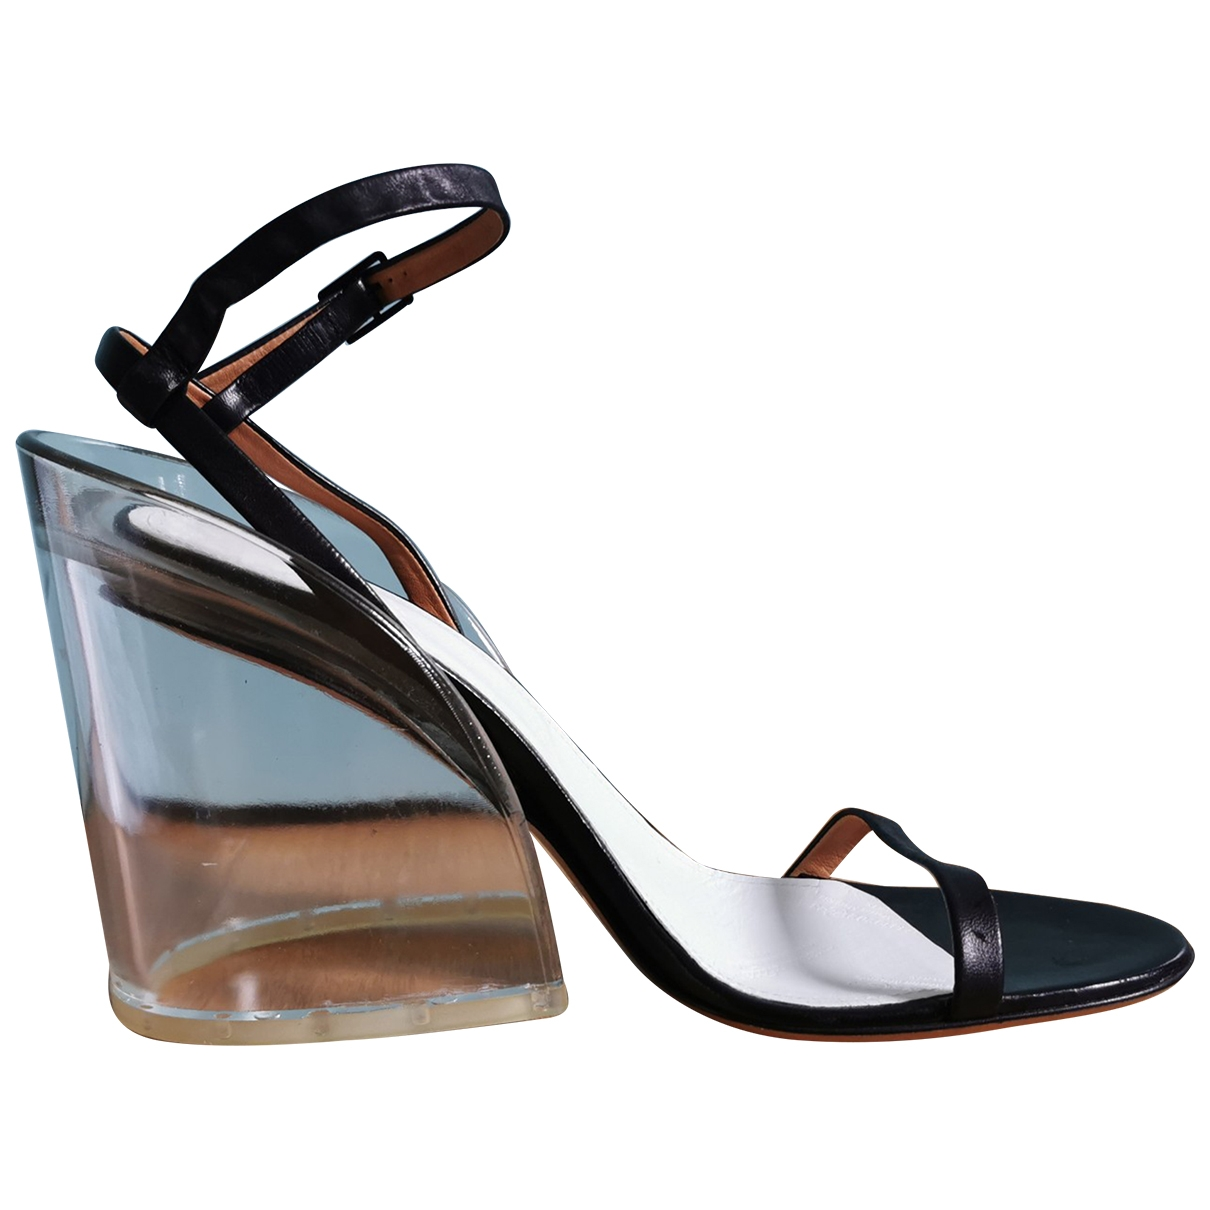 Maison Martin Margiela \N Black Leather Sandals for Women 40 EU